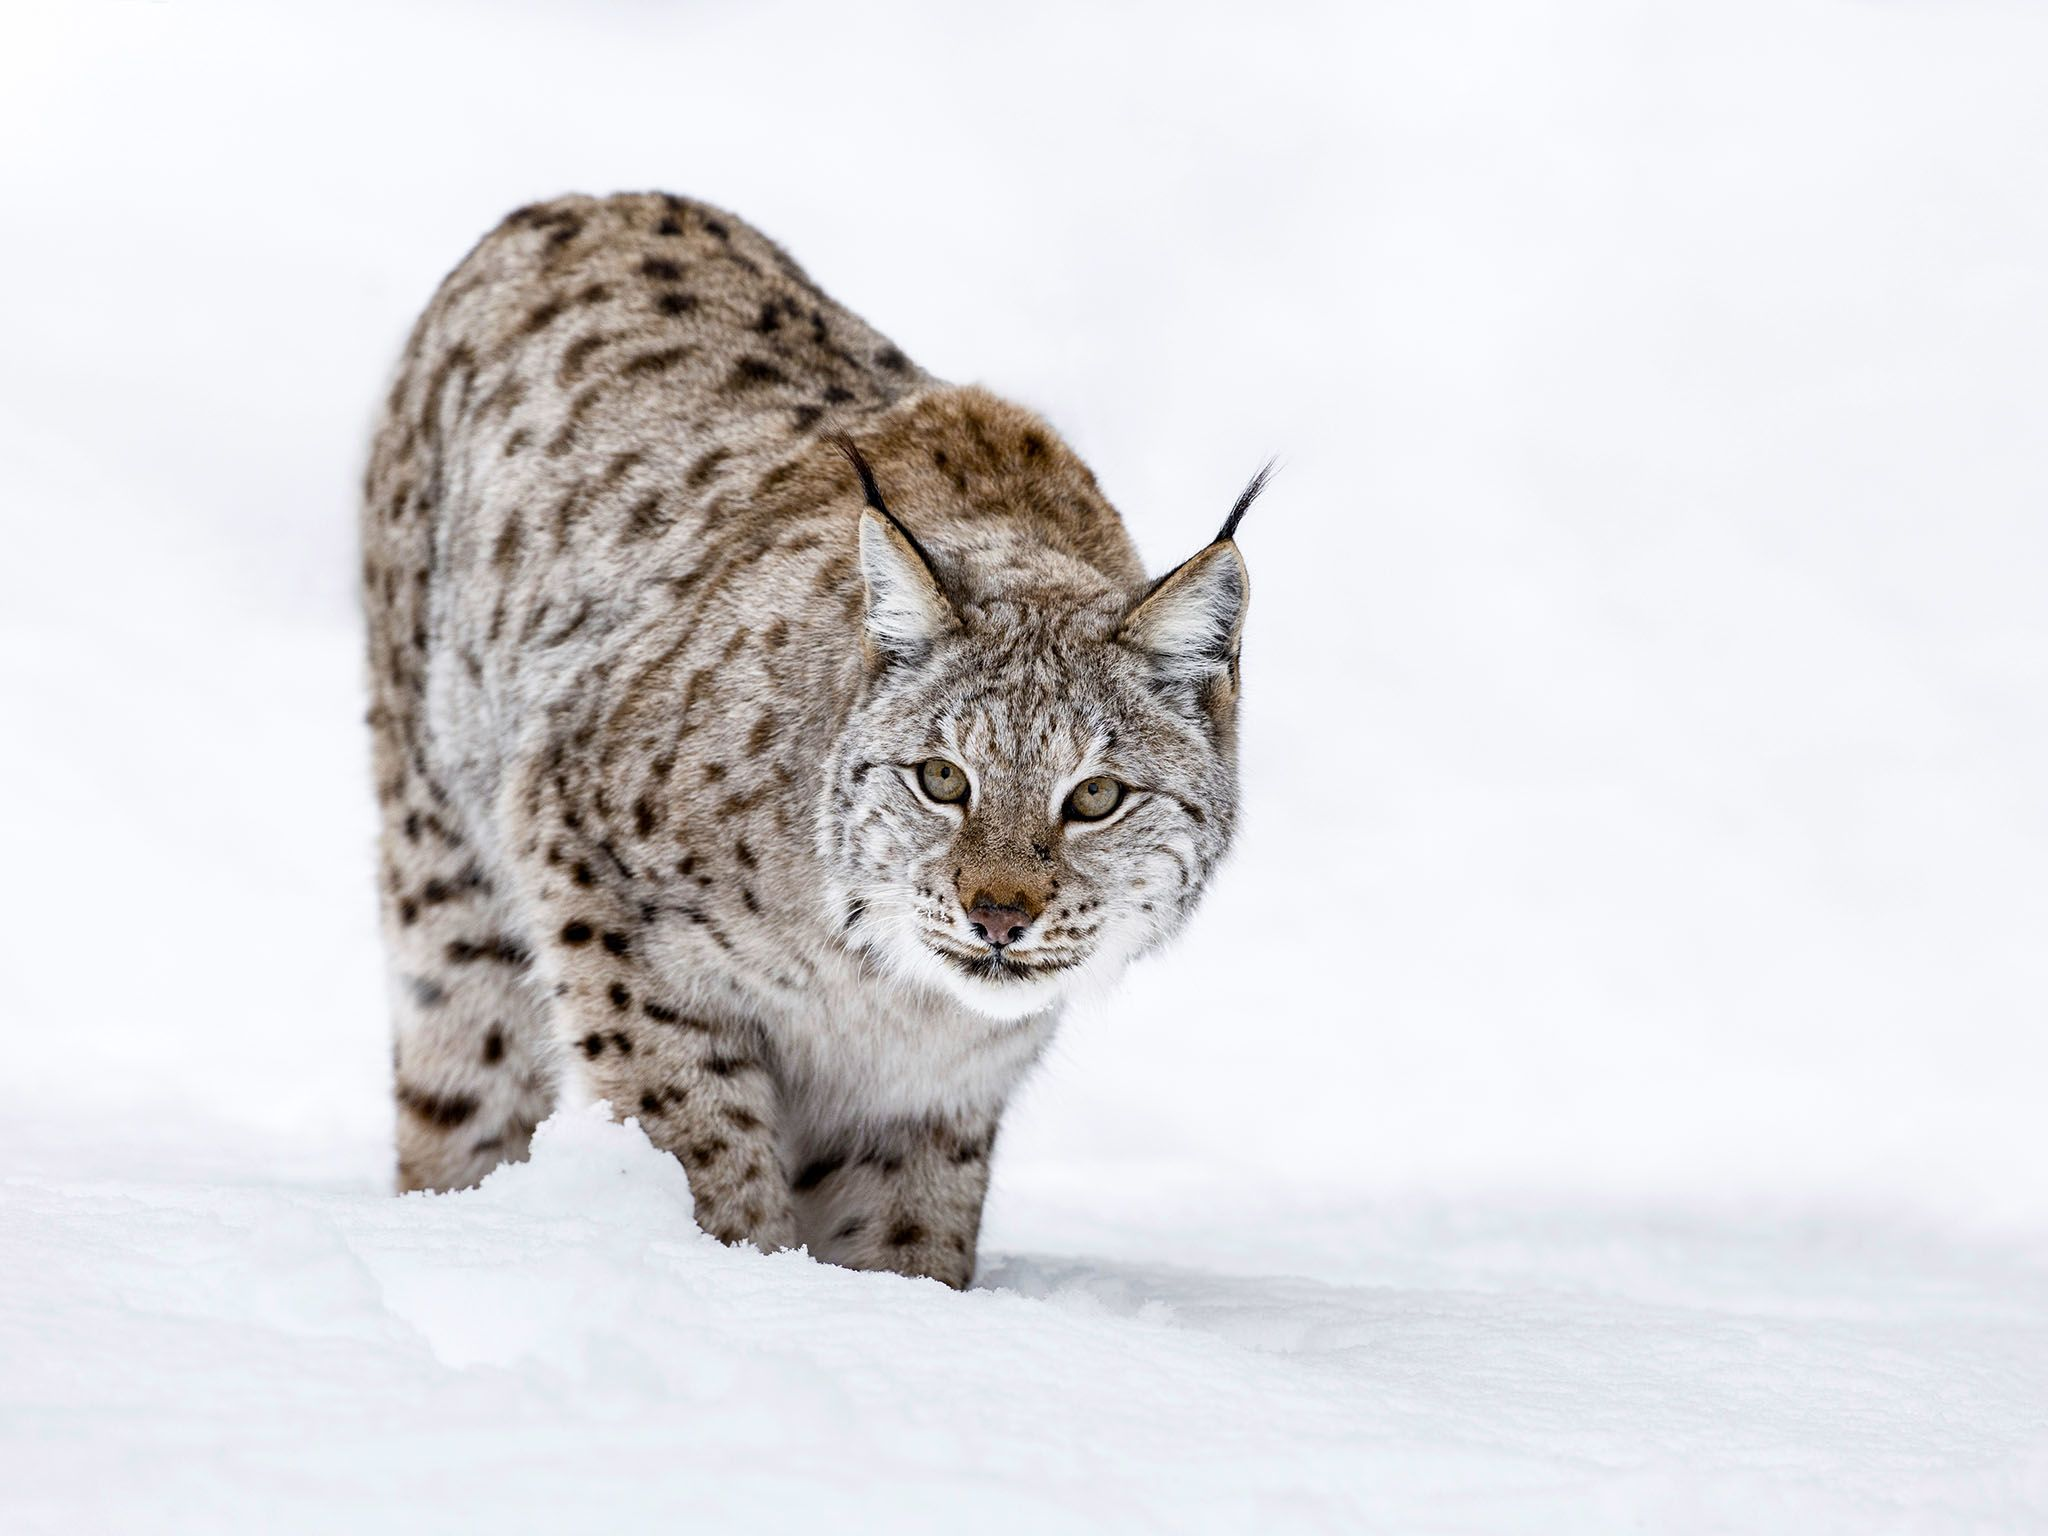 A Lynx in winter snow. This image is from Winter Wonderland. [Photo of the day - December 2015]